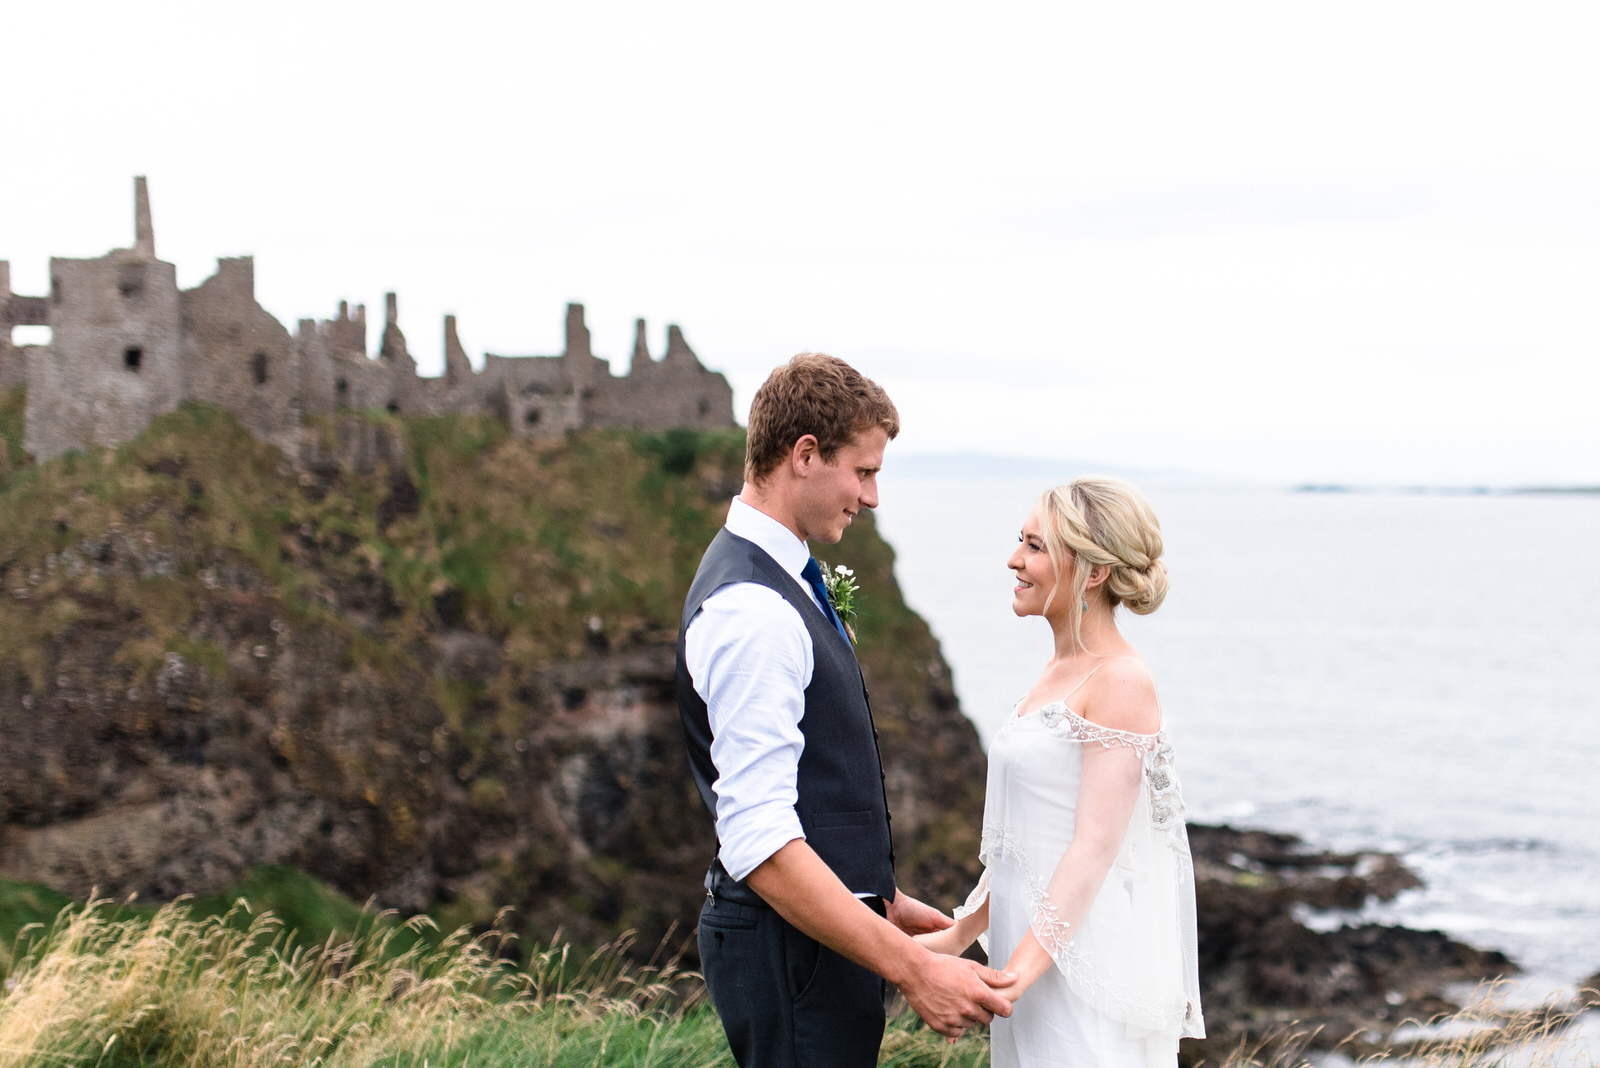 dunluce castle elopement in ireland in sage and white (22)-1.jpg